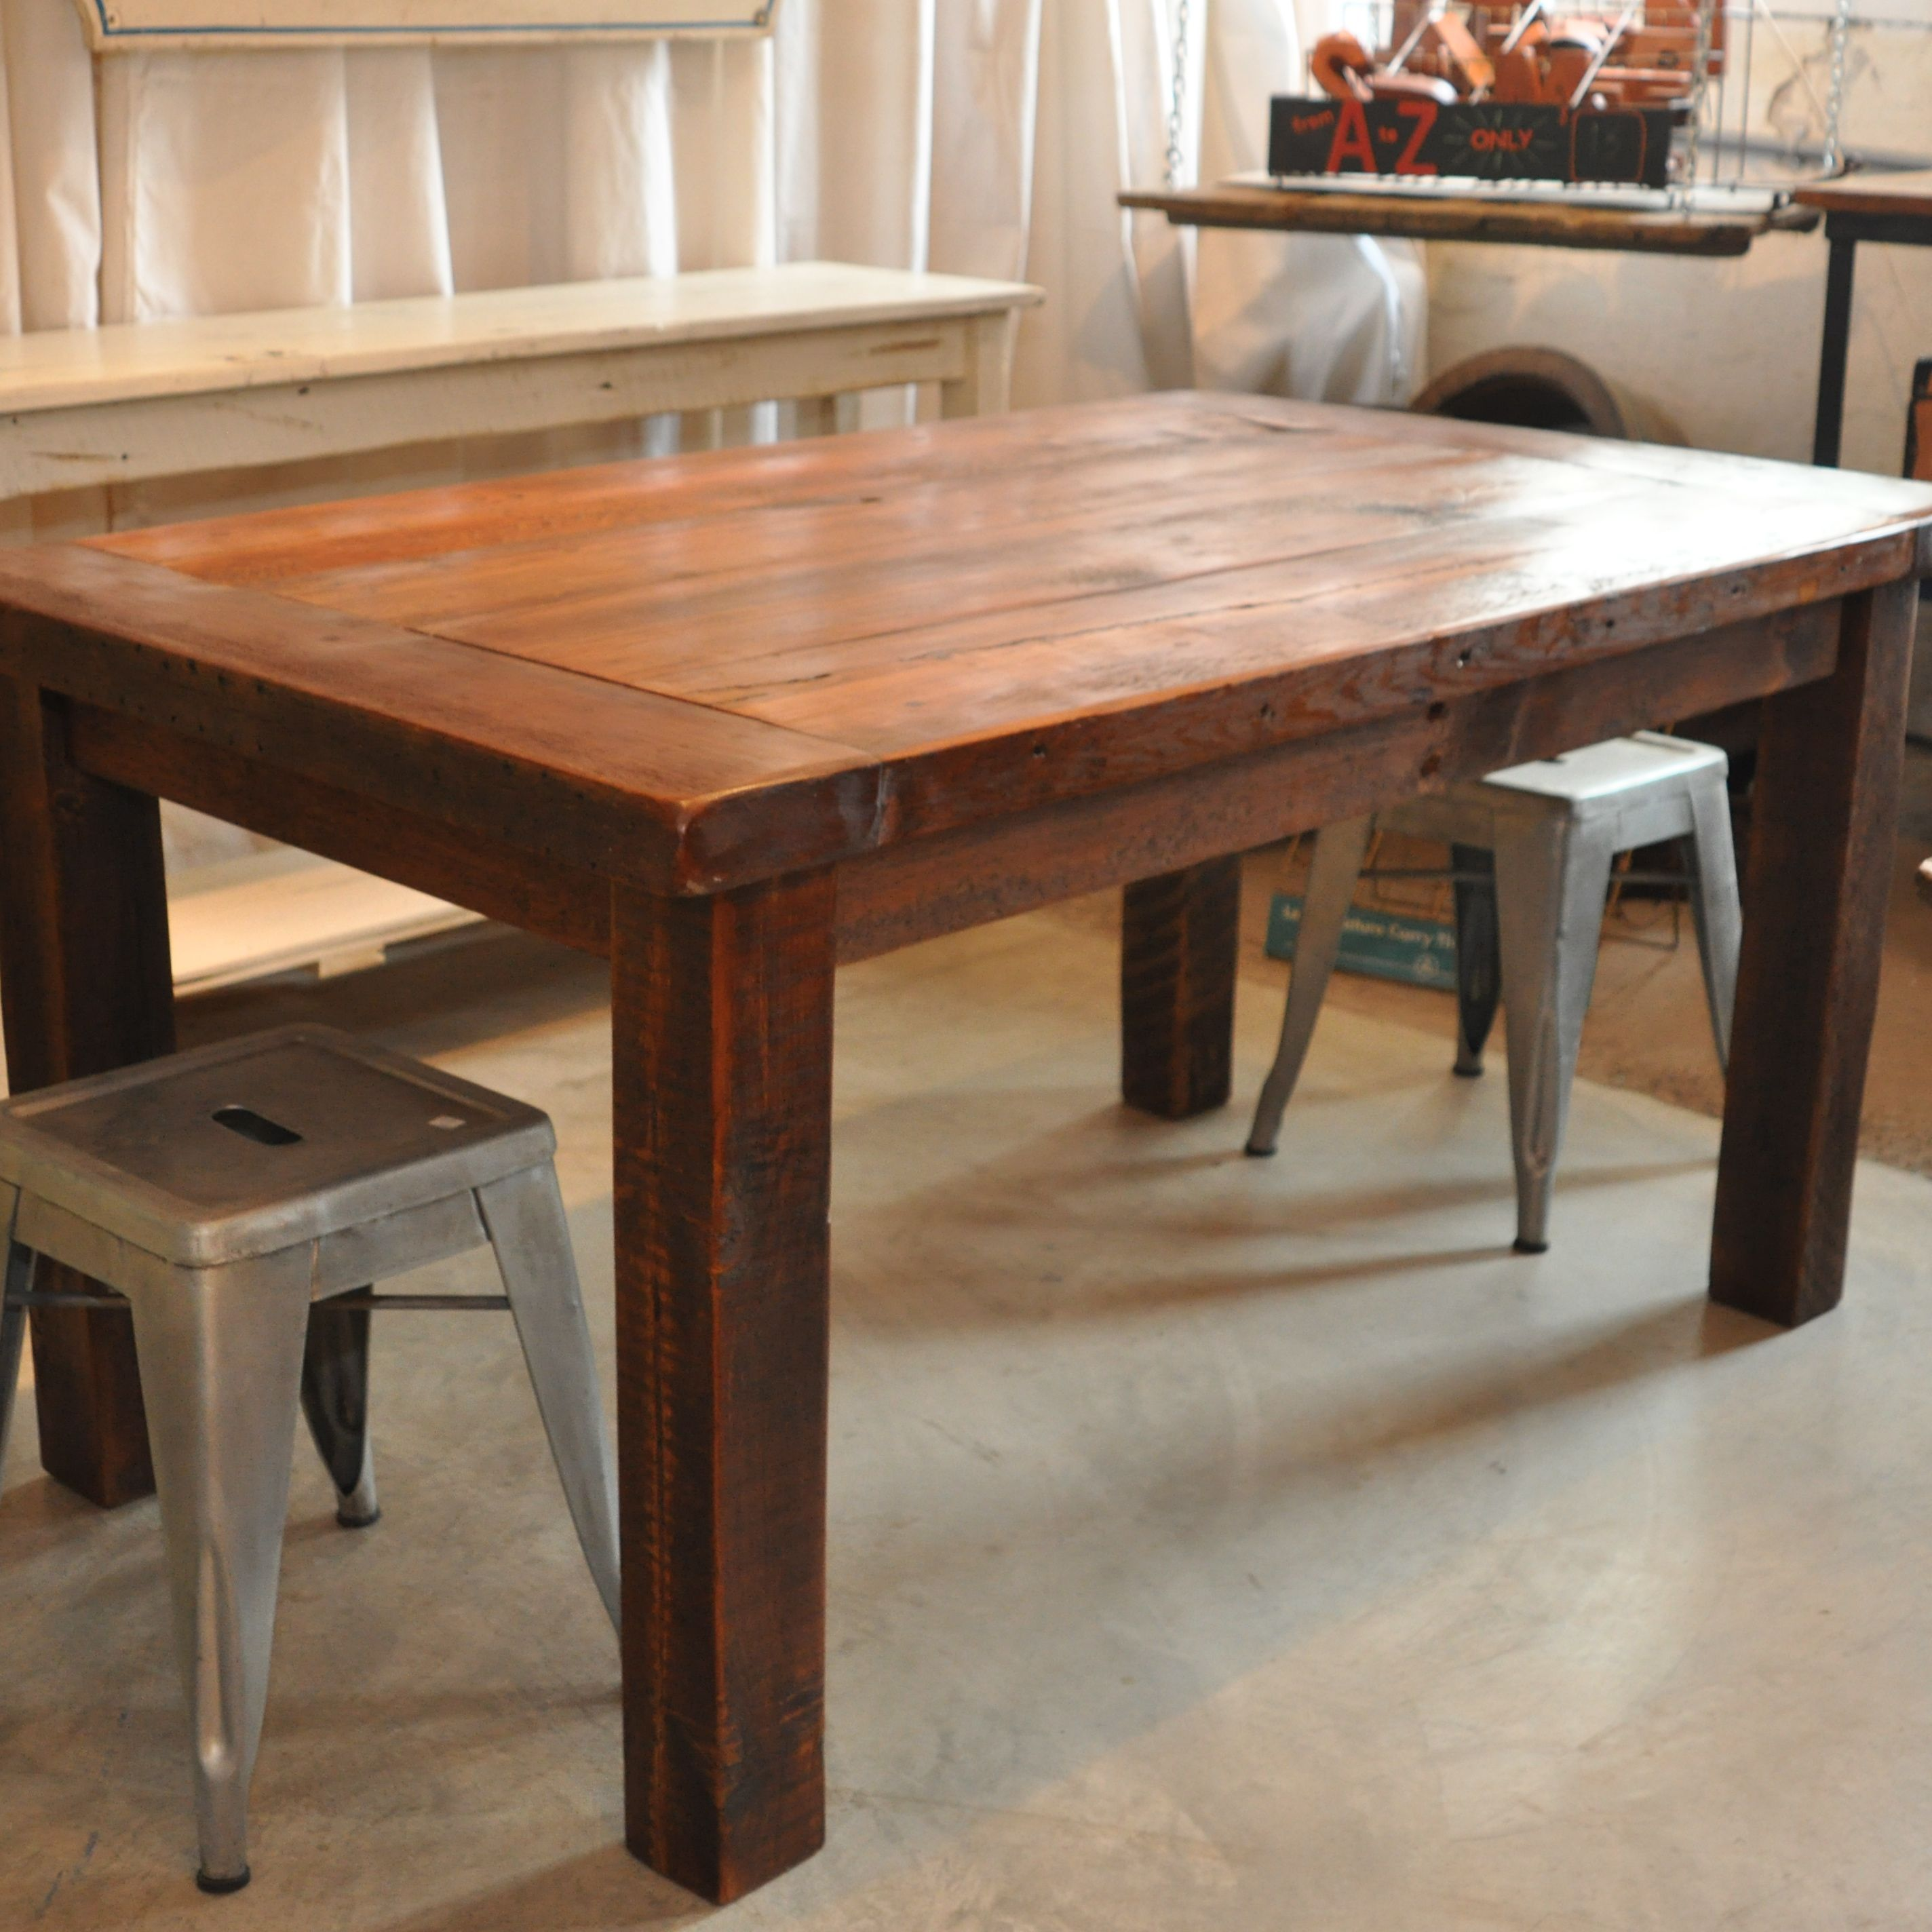 Fabulous 1800 S Reclaimed Wood Dining Table For At Madison Mabel In Frederick Md